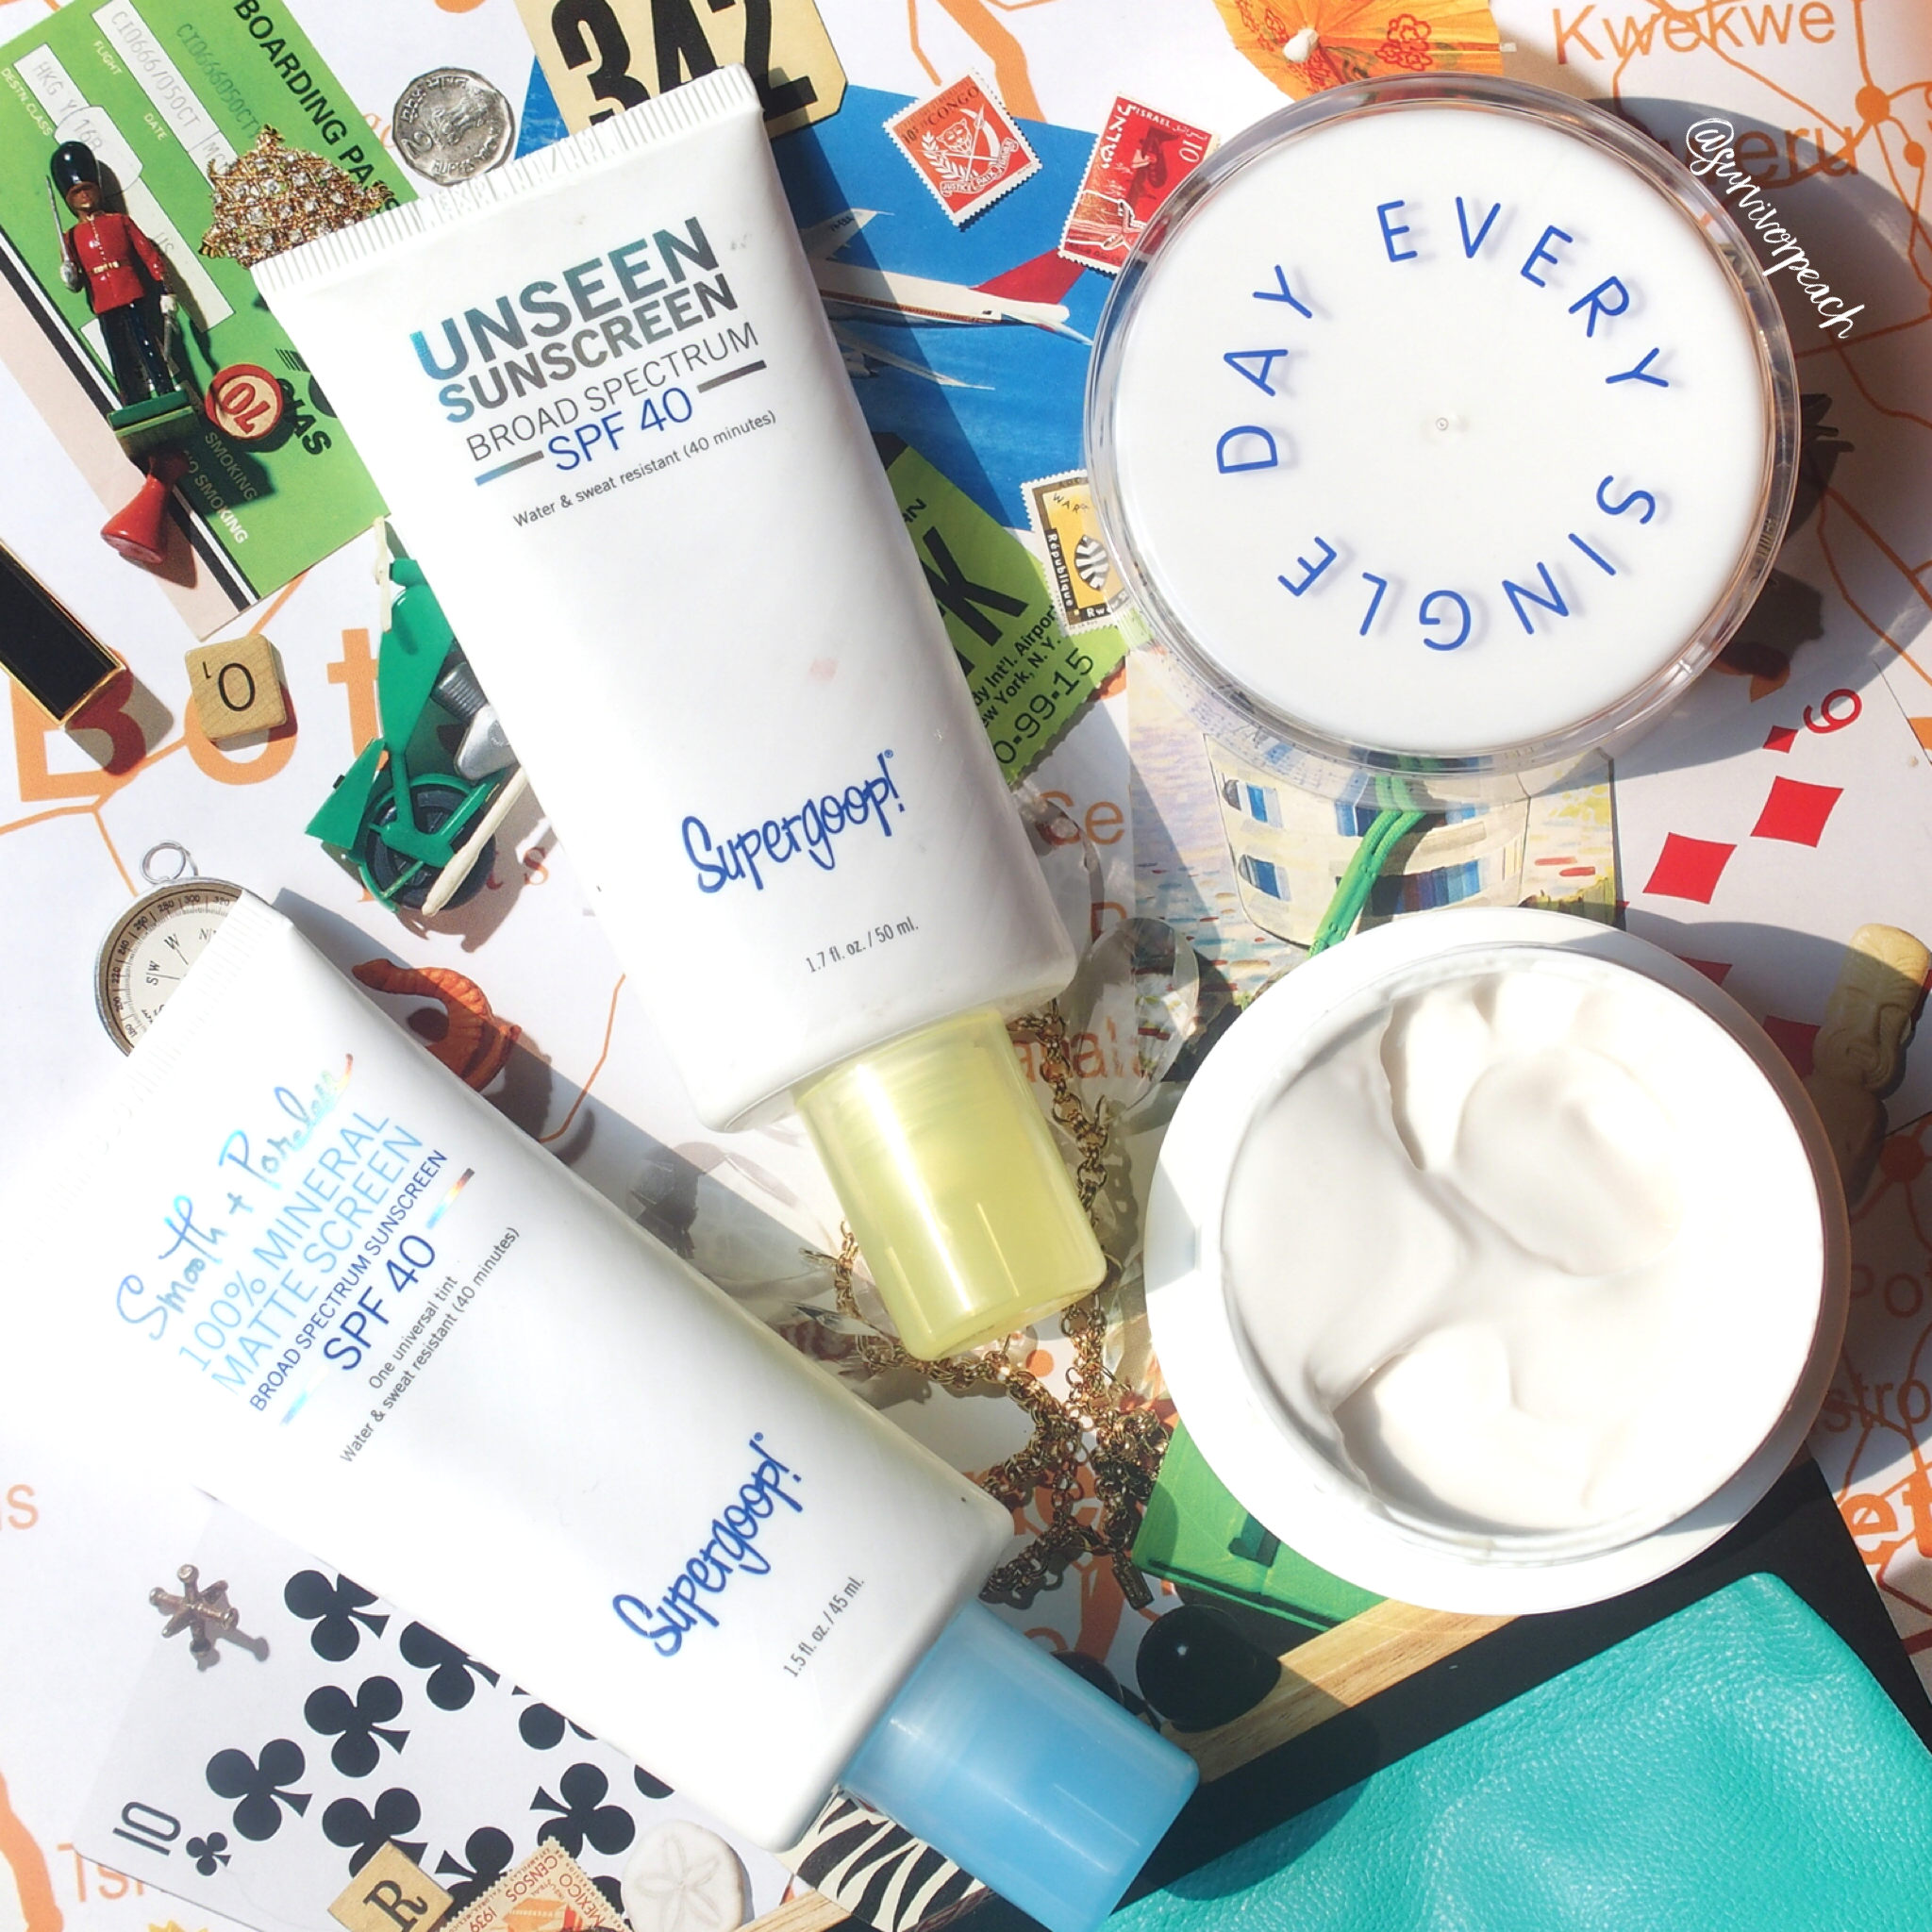 Supergoop Superscreen Daily Moisturizer and Unseen Sunscreens